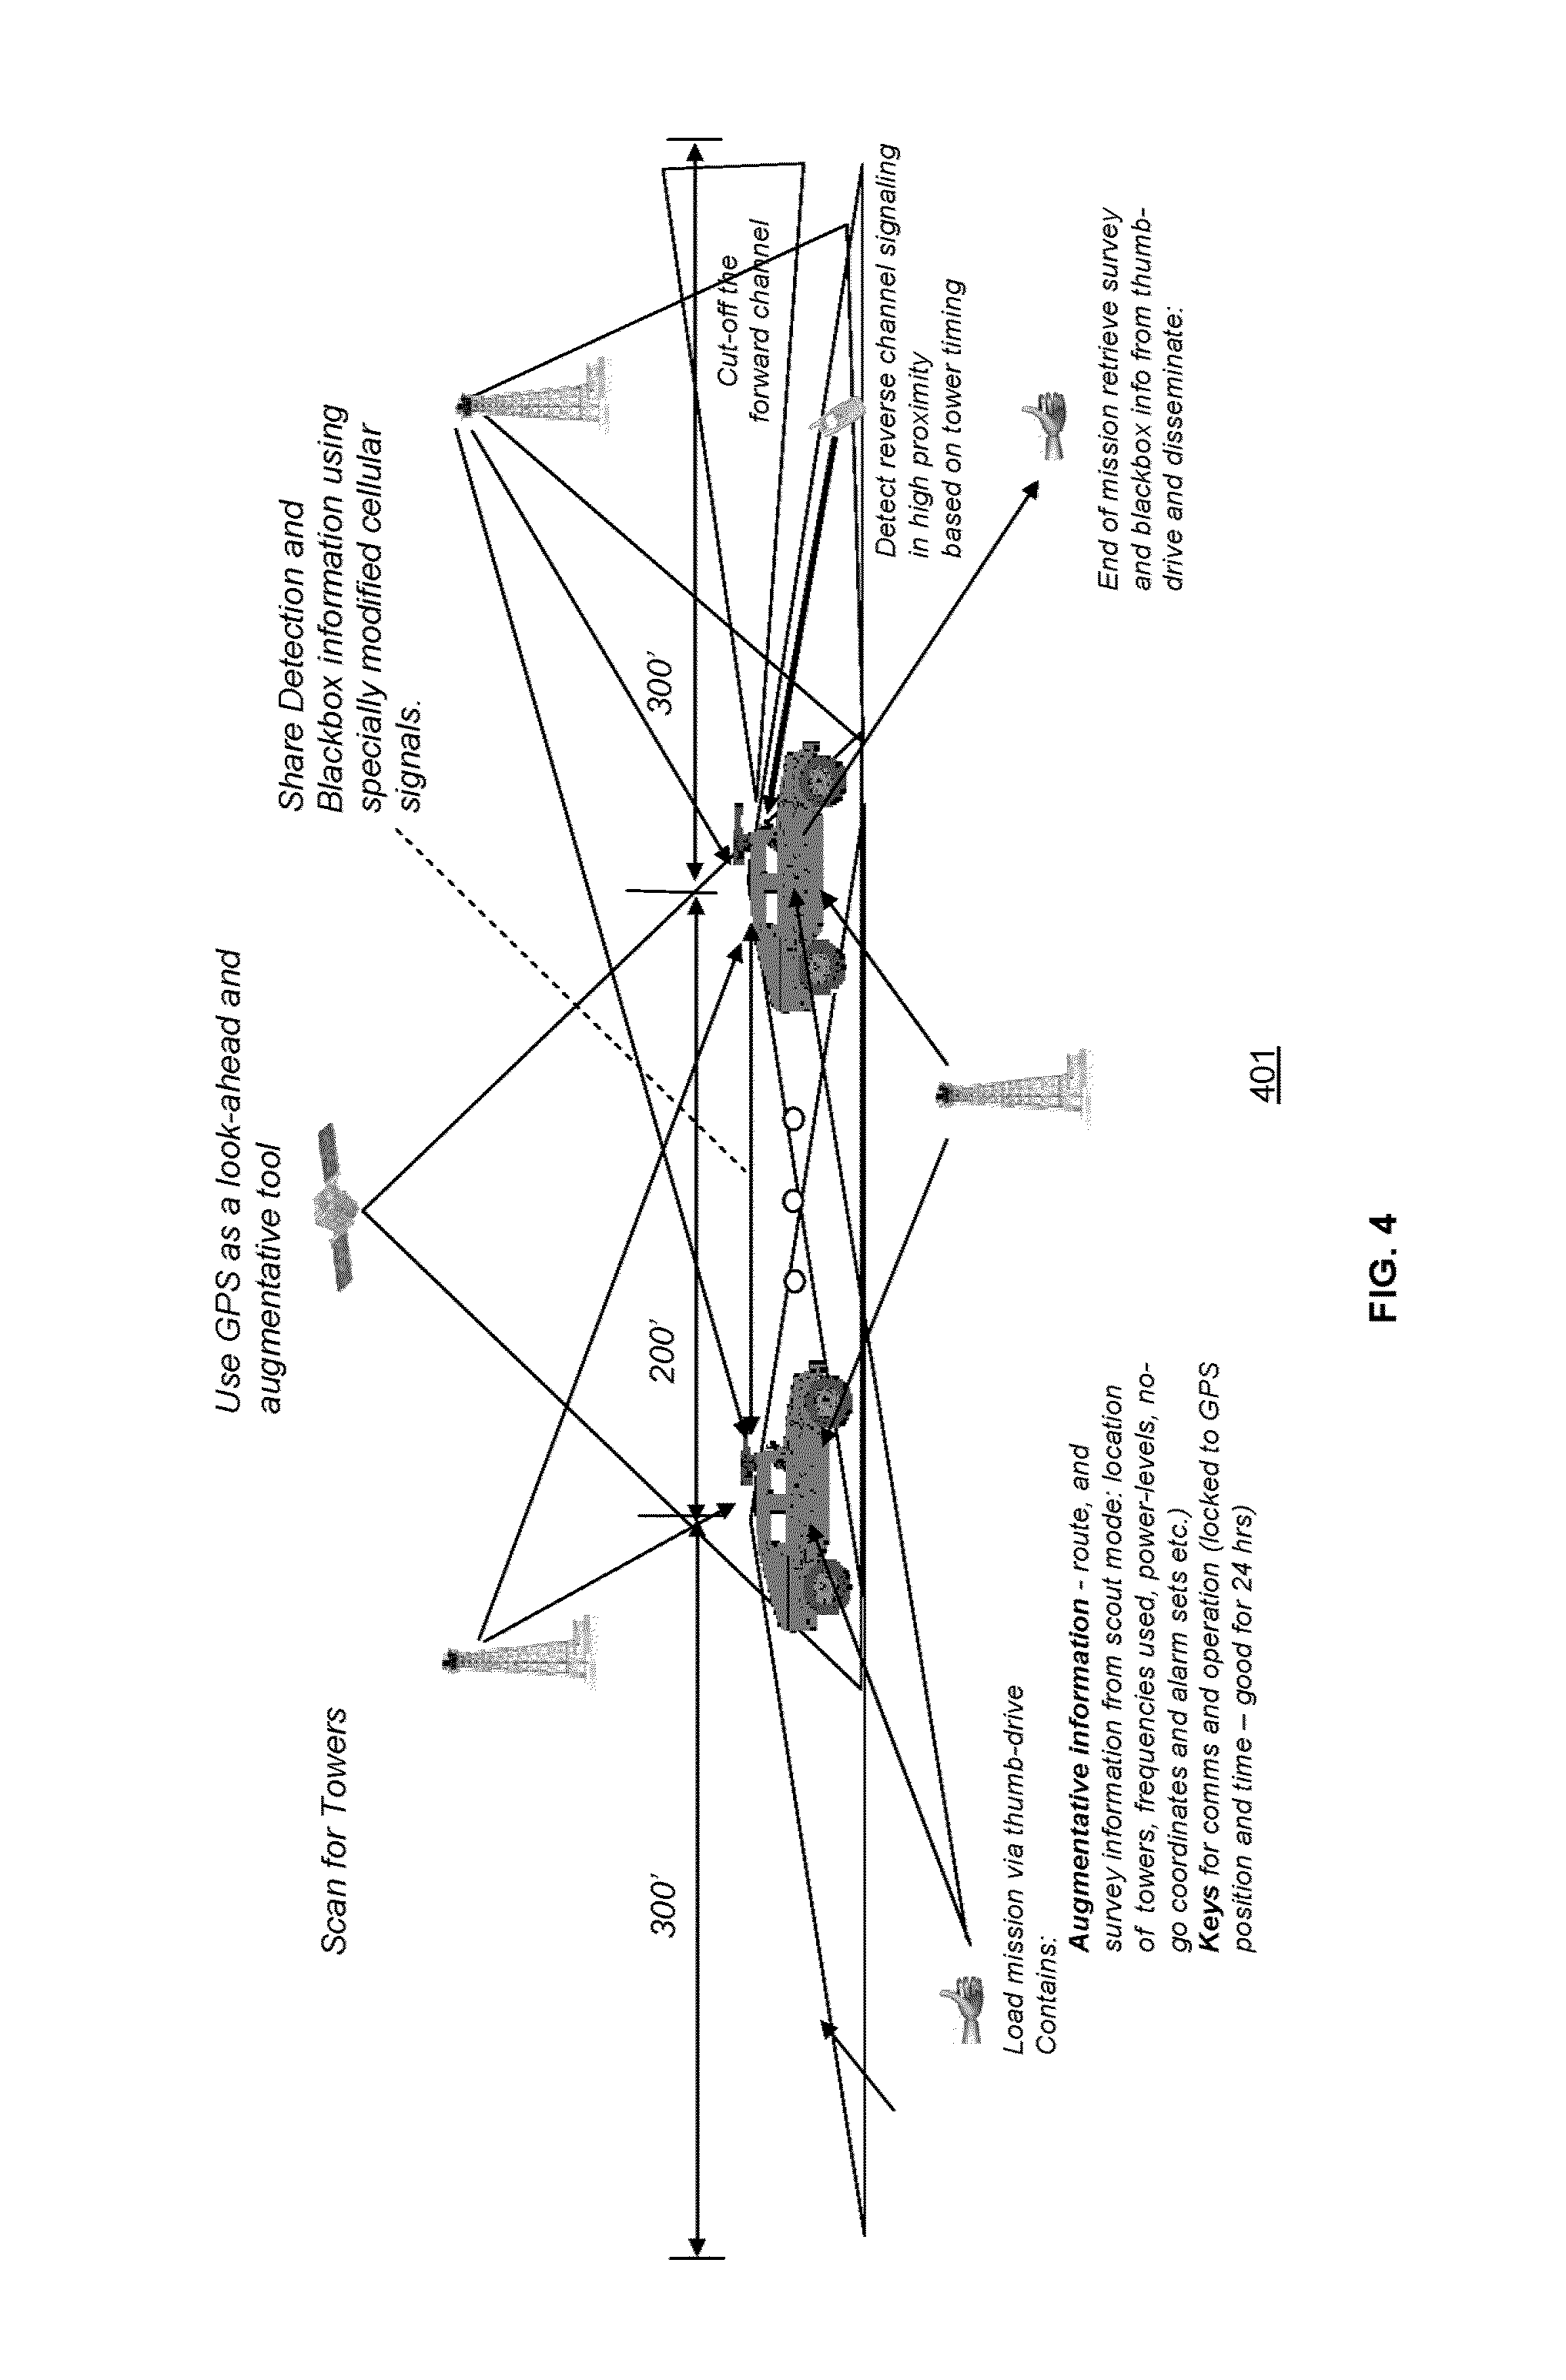 Patent Us8767595 Enhanced Methods Of Cellular Environment Two Hijack Alarms By 4001 Drawing